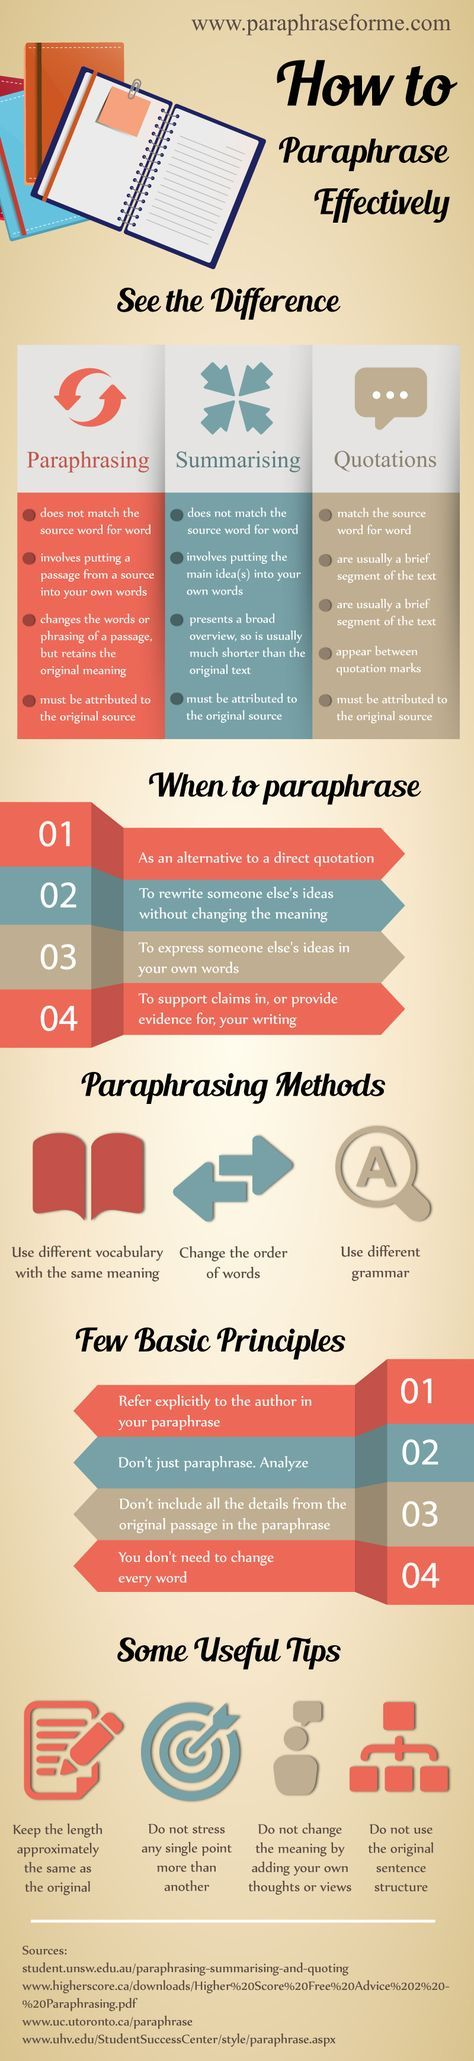 How To Paraphrase Effectively Infographic Teaching Writing Essay Apa Definition Of Paraphrasing